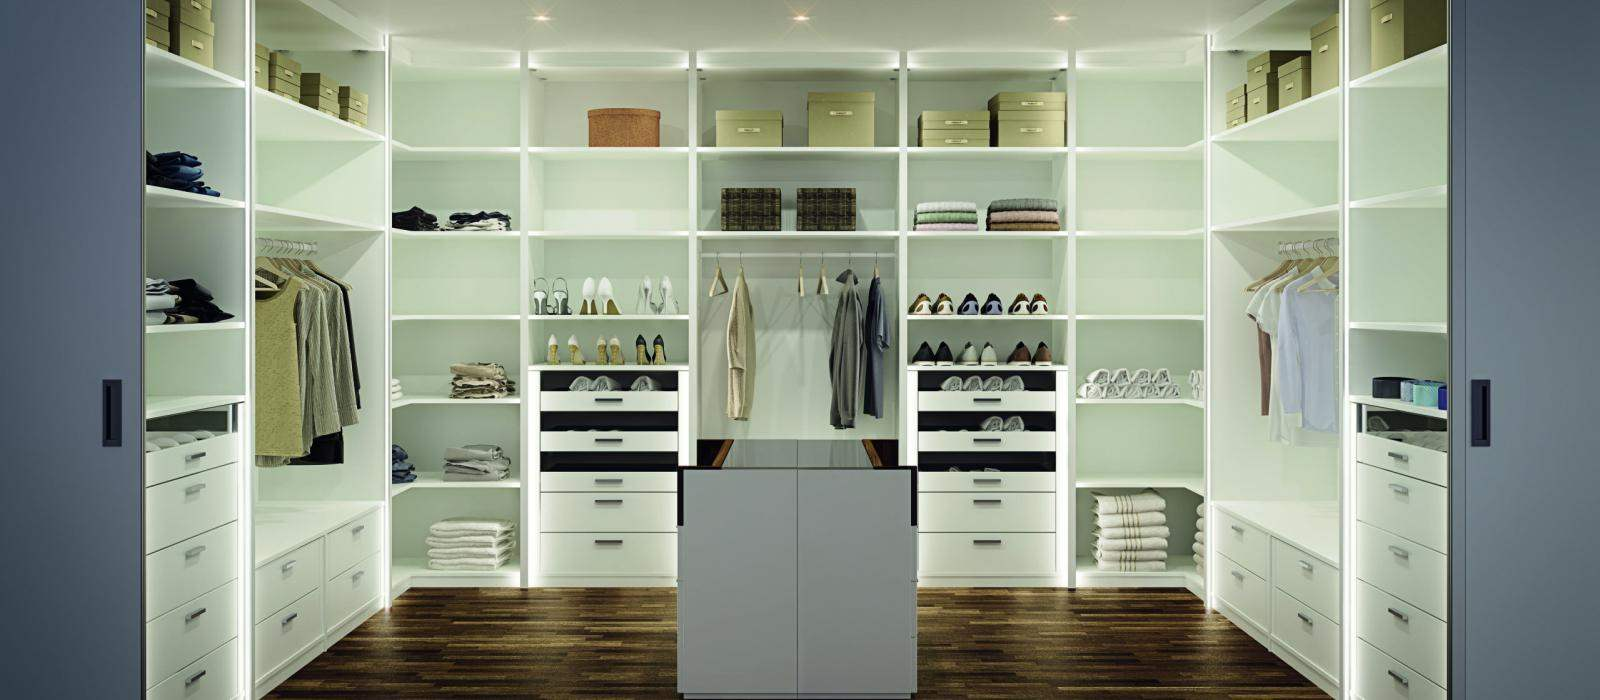 German Kitchen Cabinets